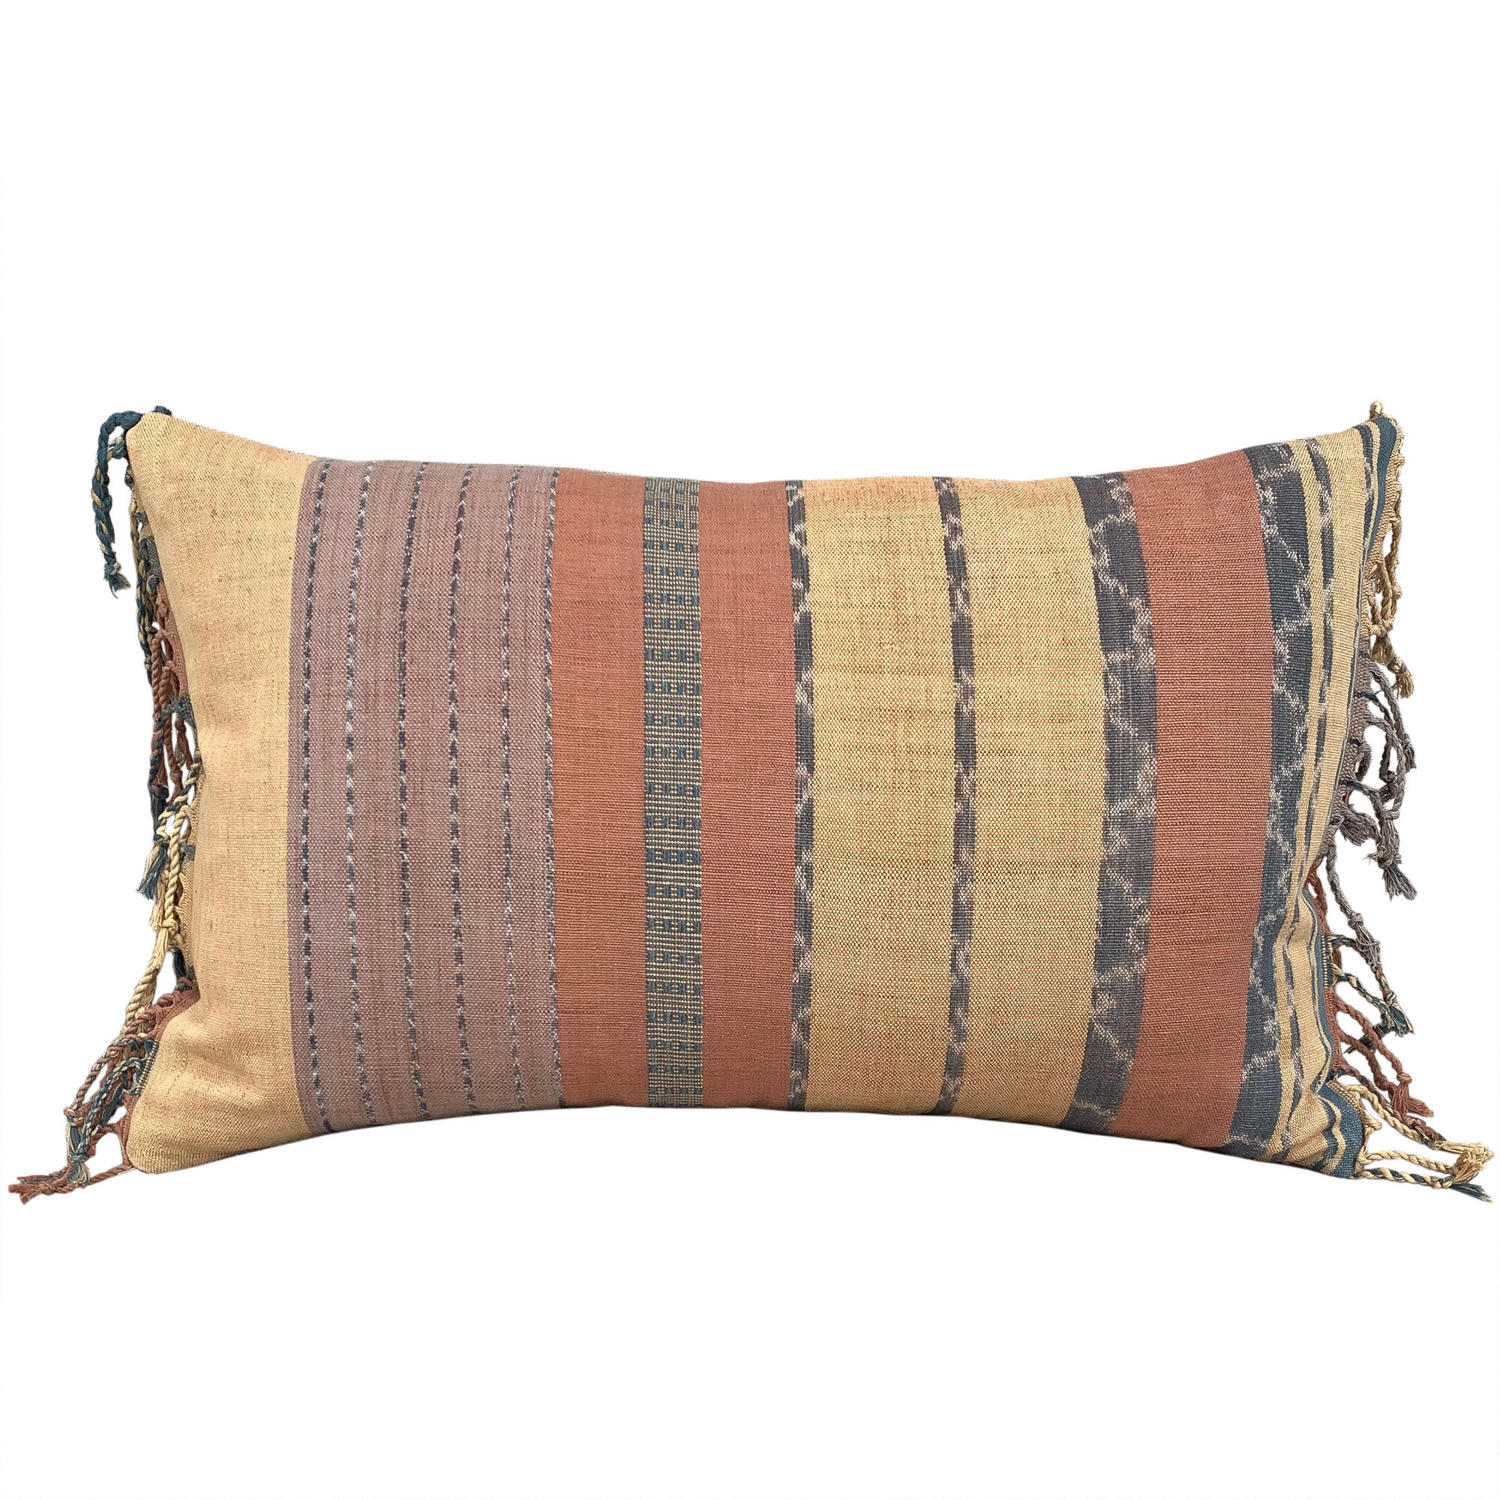 Flores ikat cushion with fringed ends